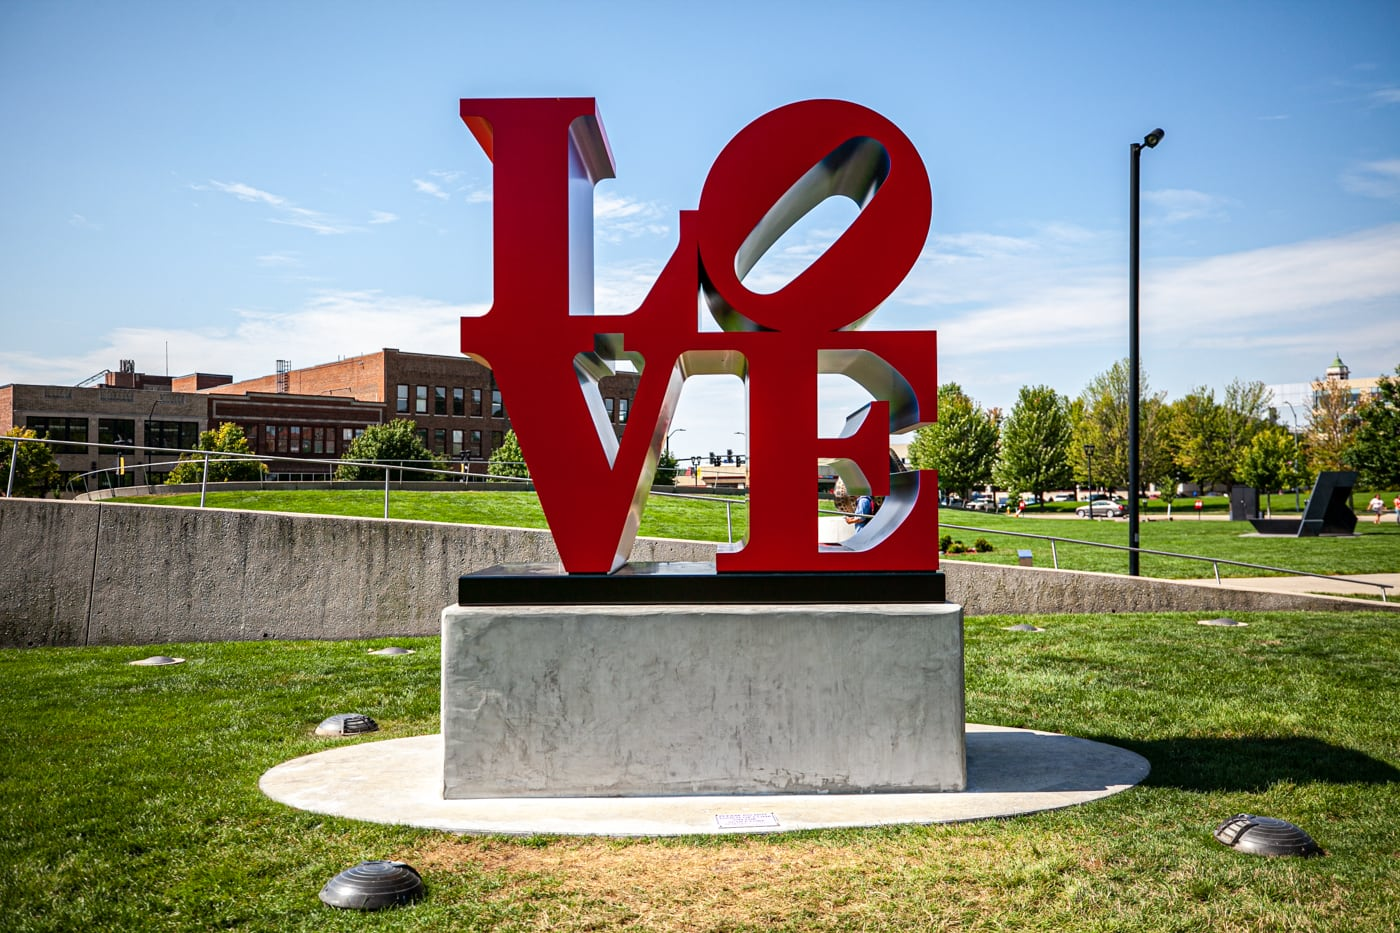 LOVE by Robert Indiana | Pappajohn Sculpture Park in Des Moines, Iowa